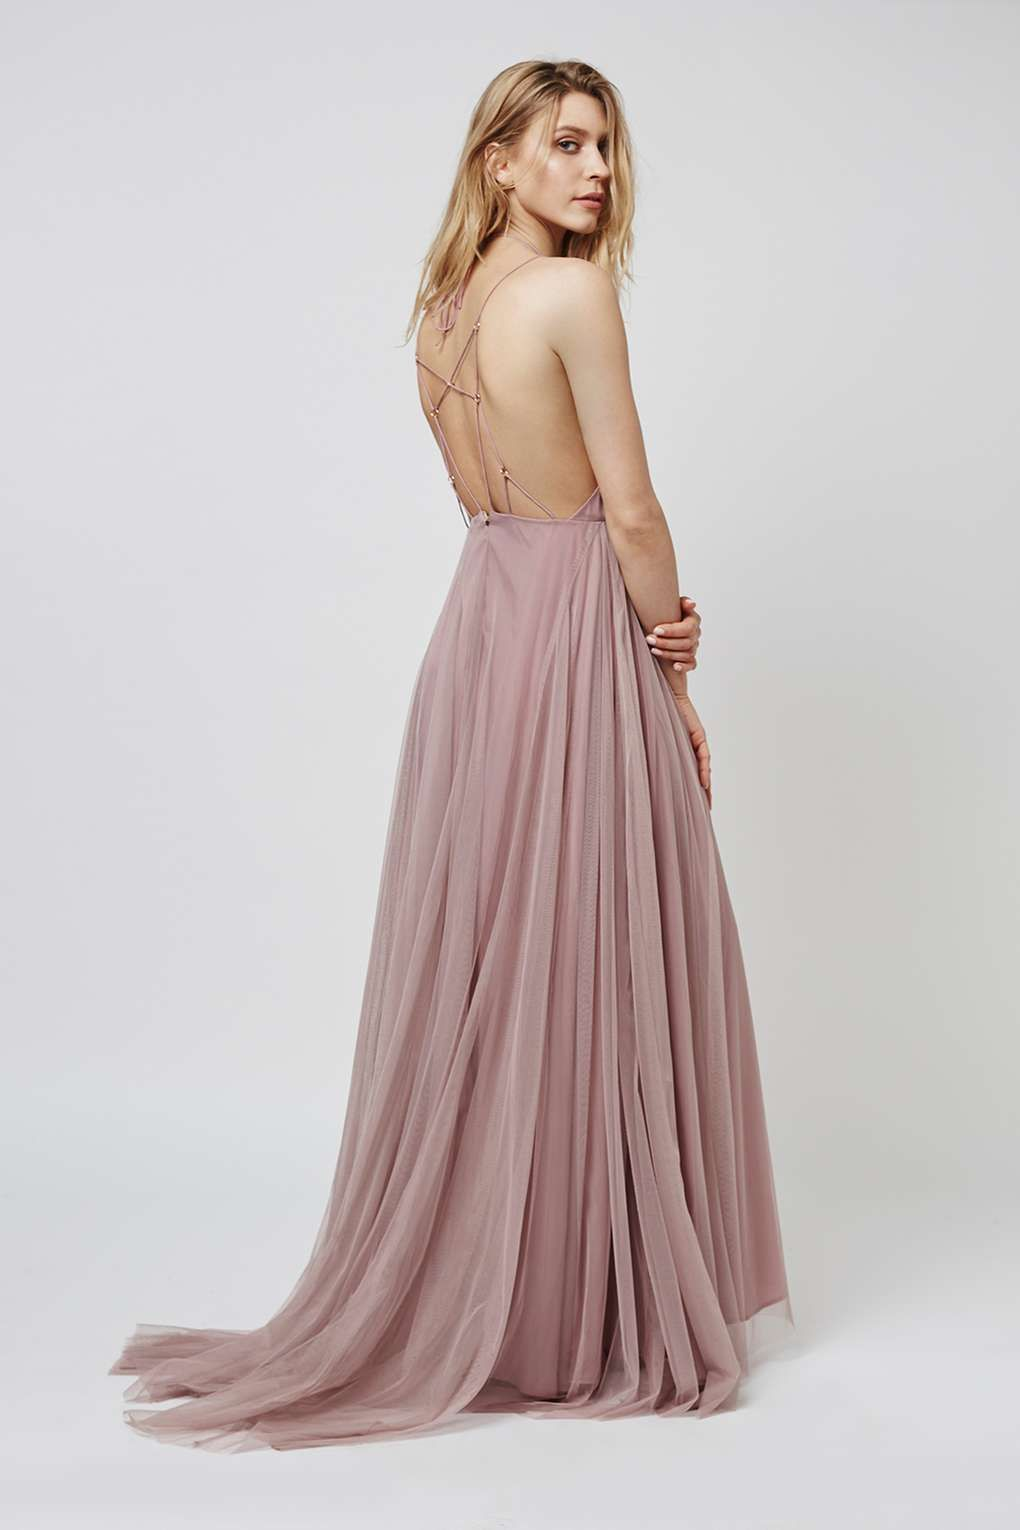 Tulle Lace-Up Maxi Dress - We Love